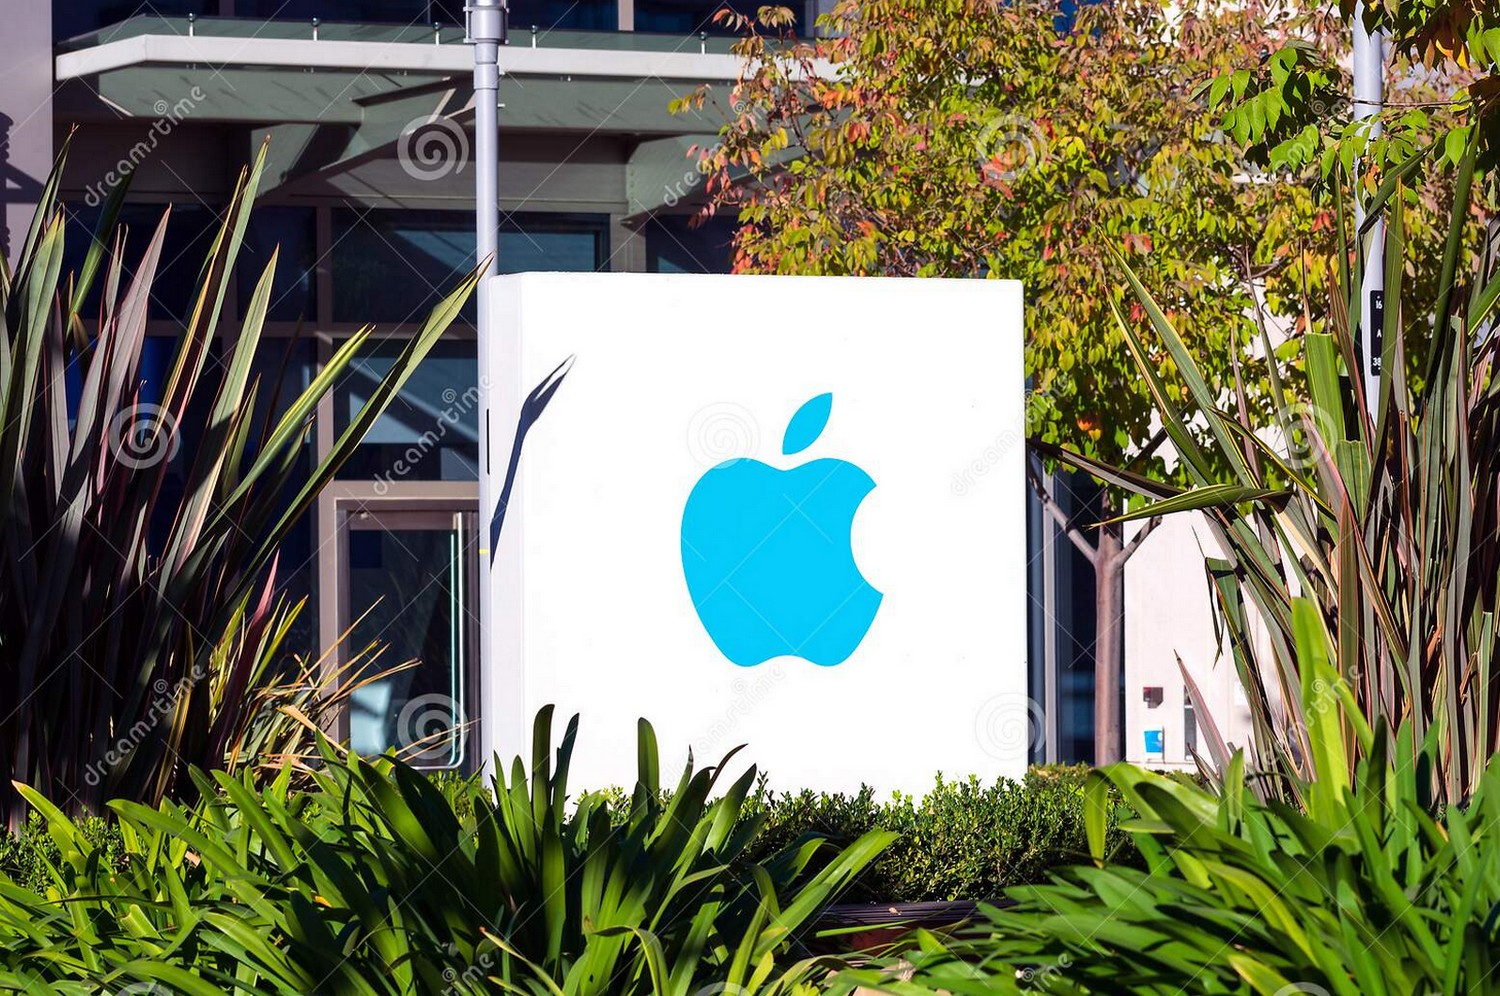 The Apple logo on a signpost at the entrance to one of the offices at its headquarters in Silicon Valley -  Cupertino, California. (Photo Apple Inc)